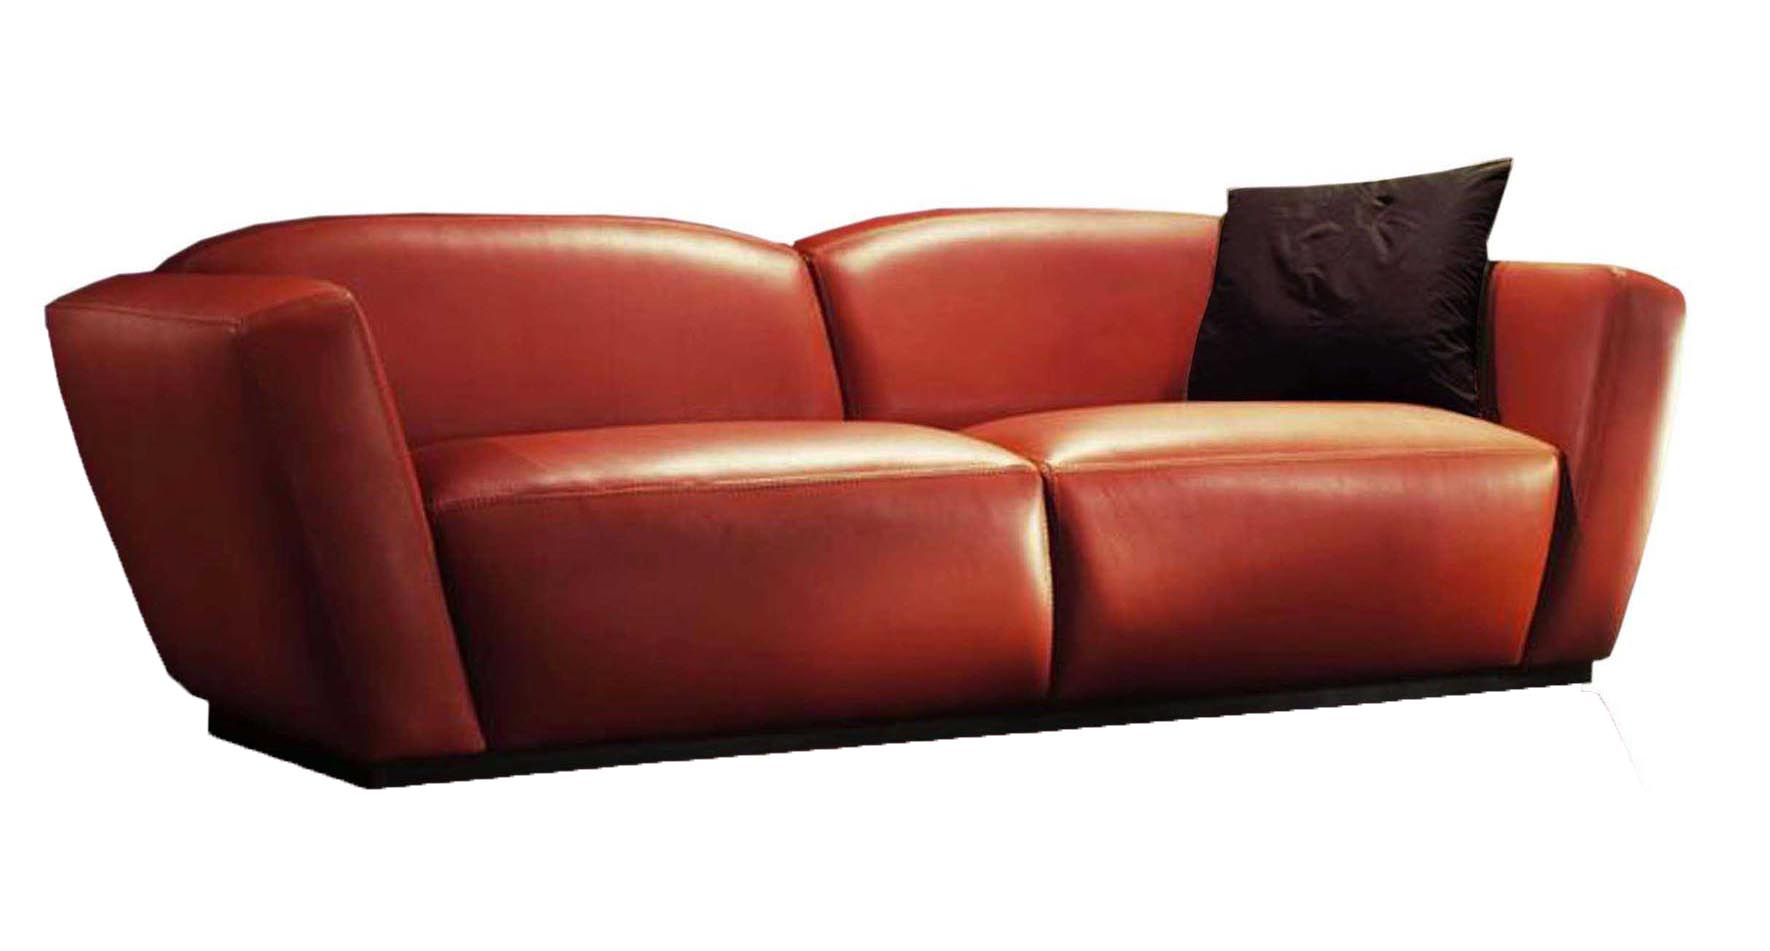 Sofa contemporaneo deko for Sofas contemporaneos